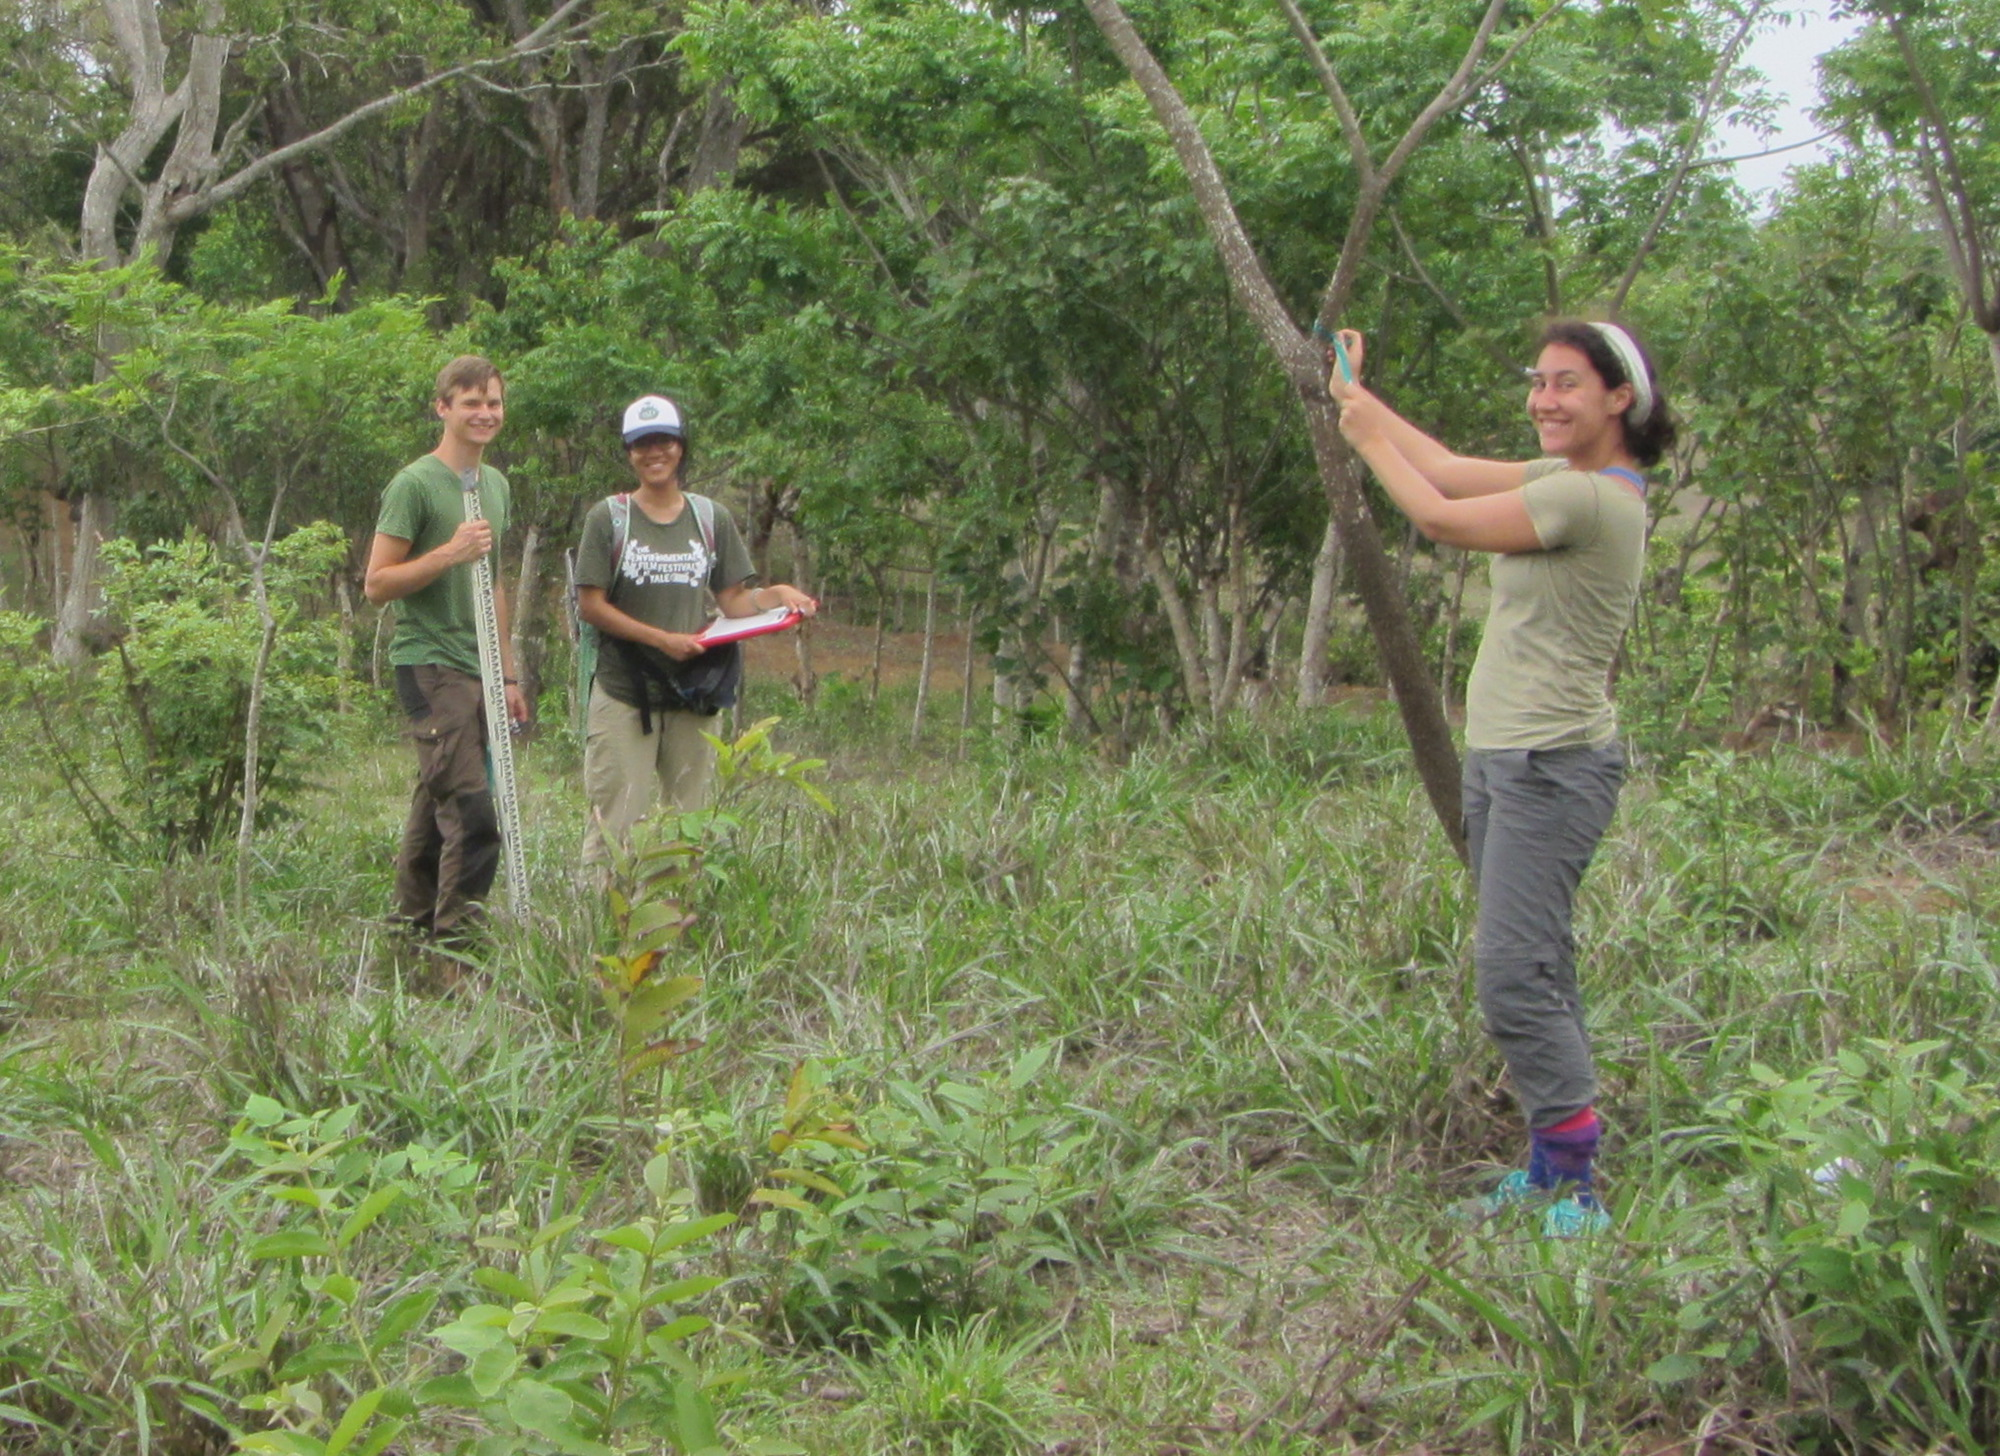 Jonas Lechner, Veronica Chang, and Asha Bertsch in Panama 2016